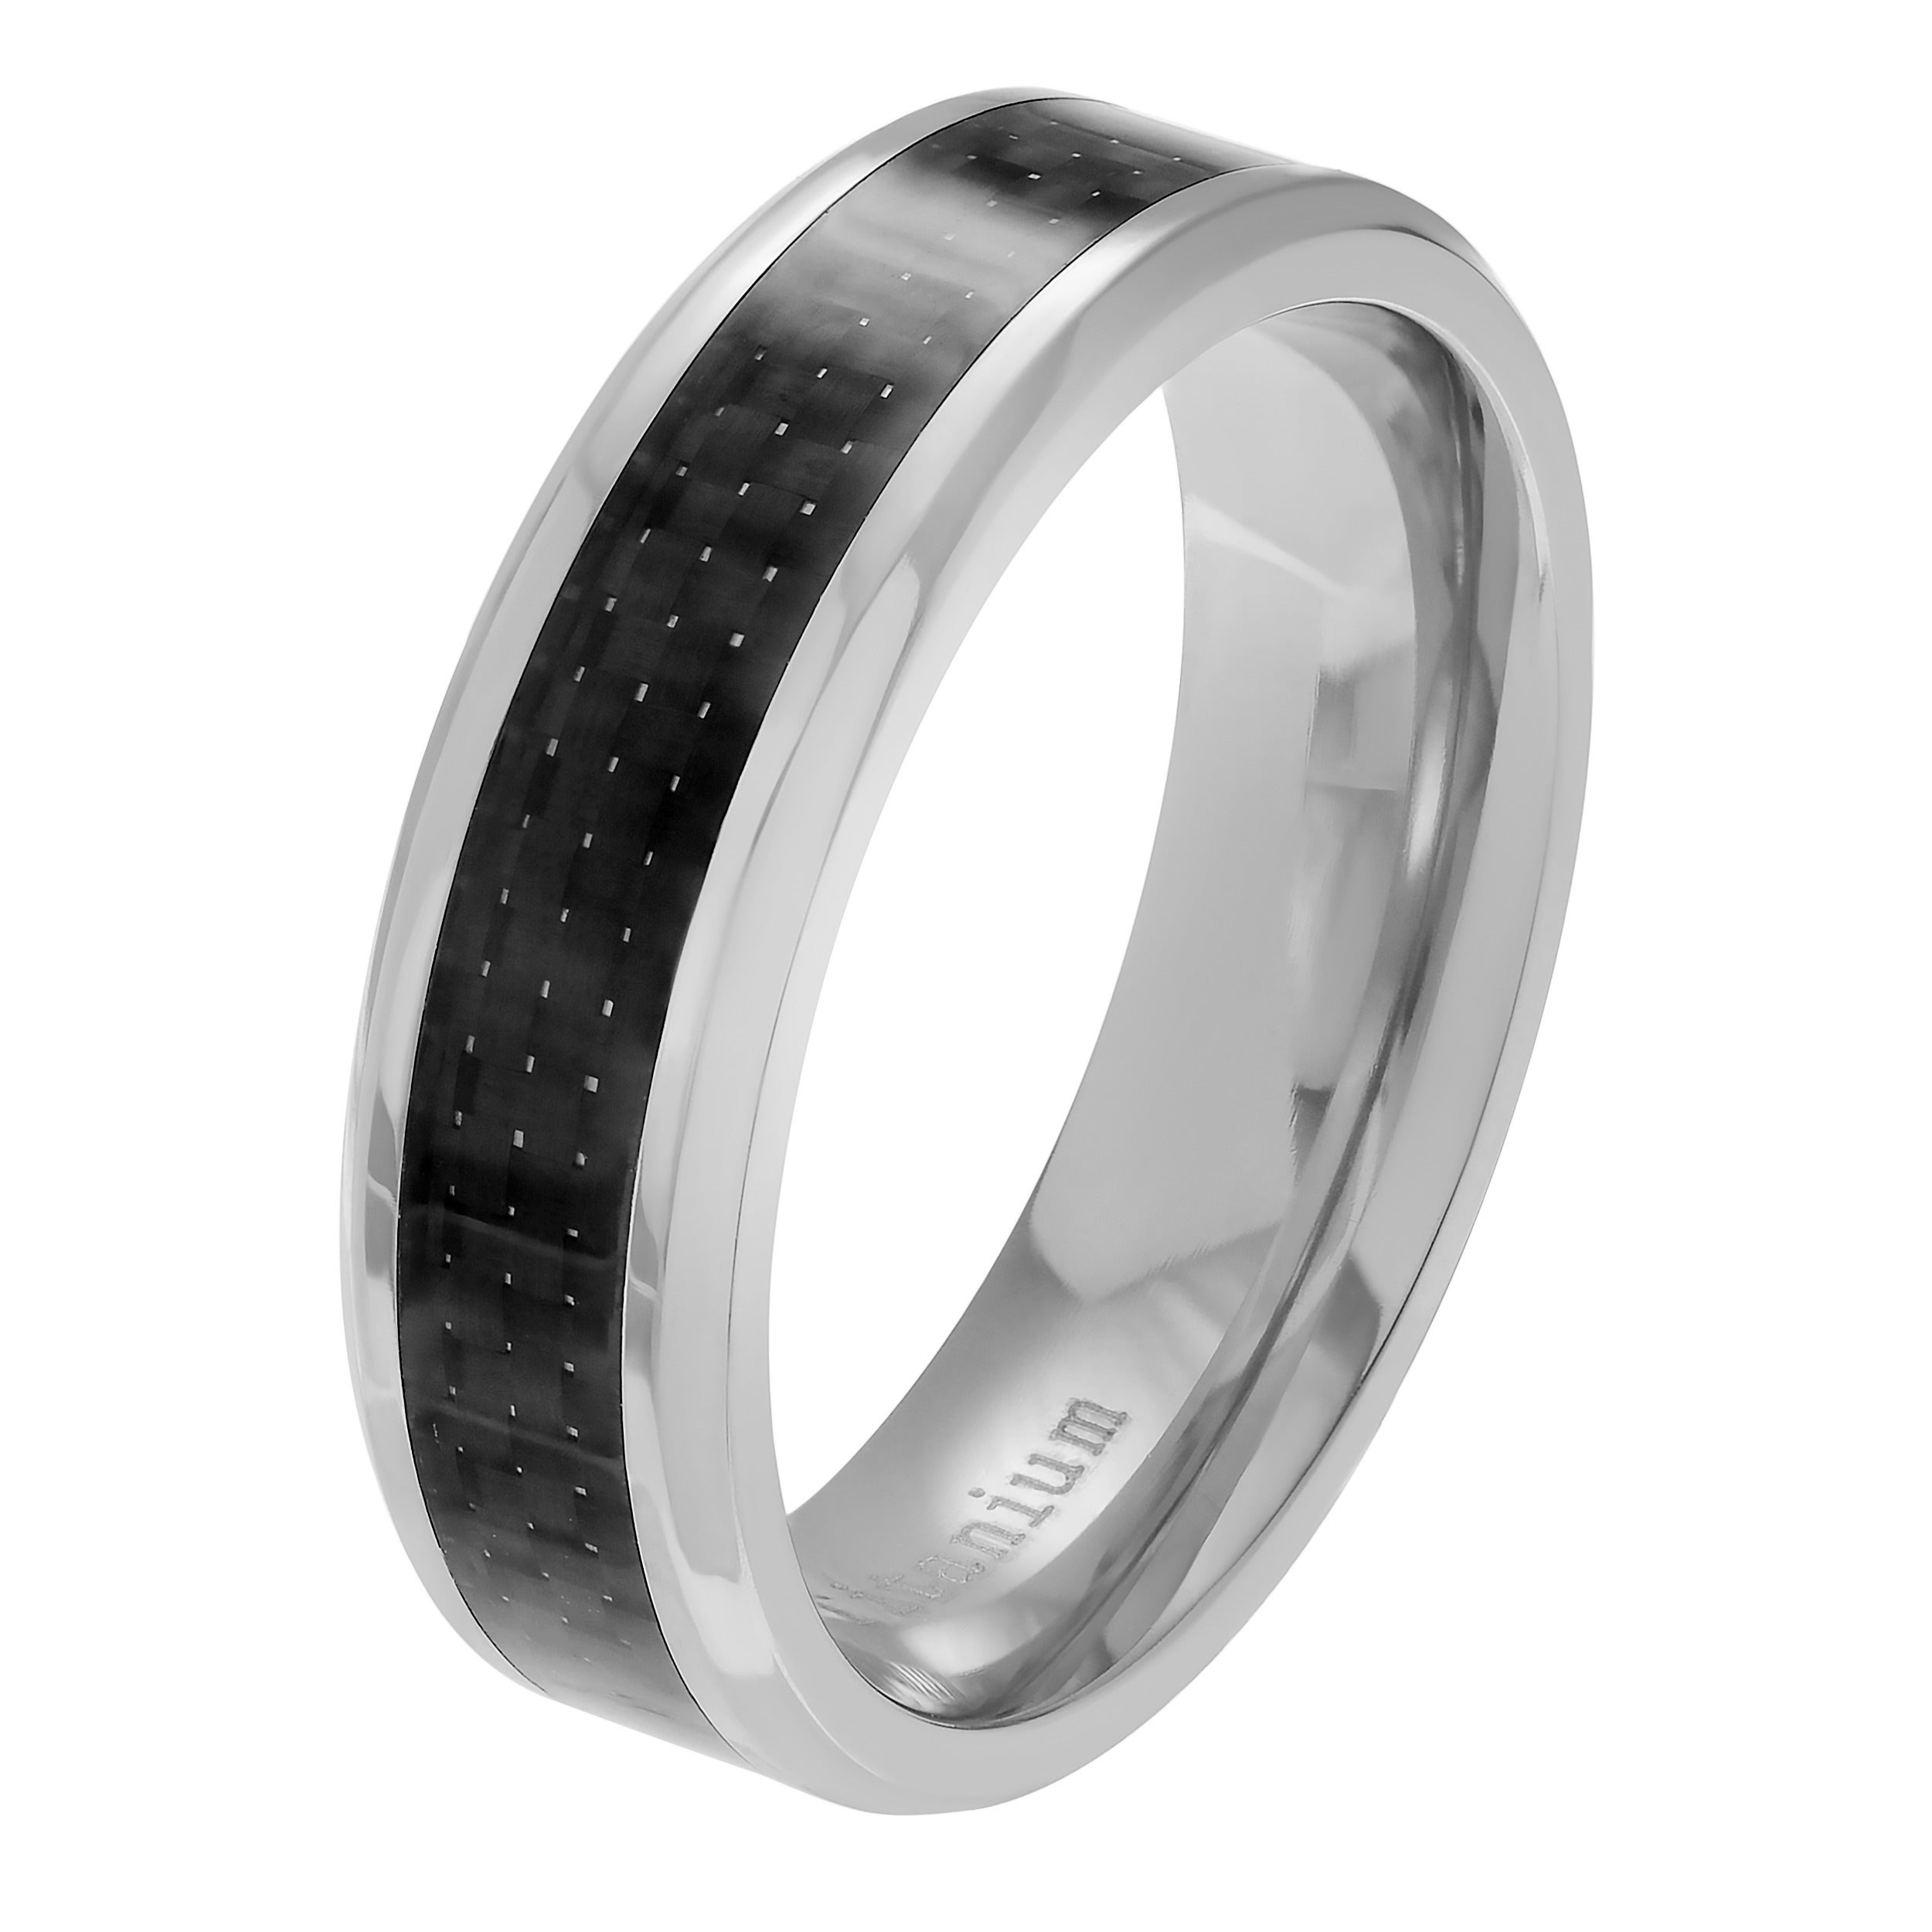 jewelry blue dp amazon tungsten ring wedding fiber rings inlay black half whole sizes carbon unisex us com solitaire